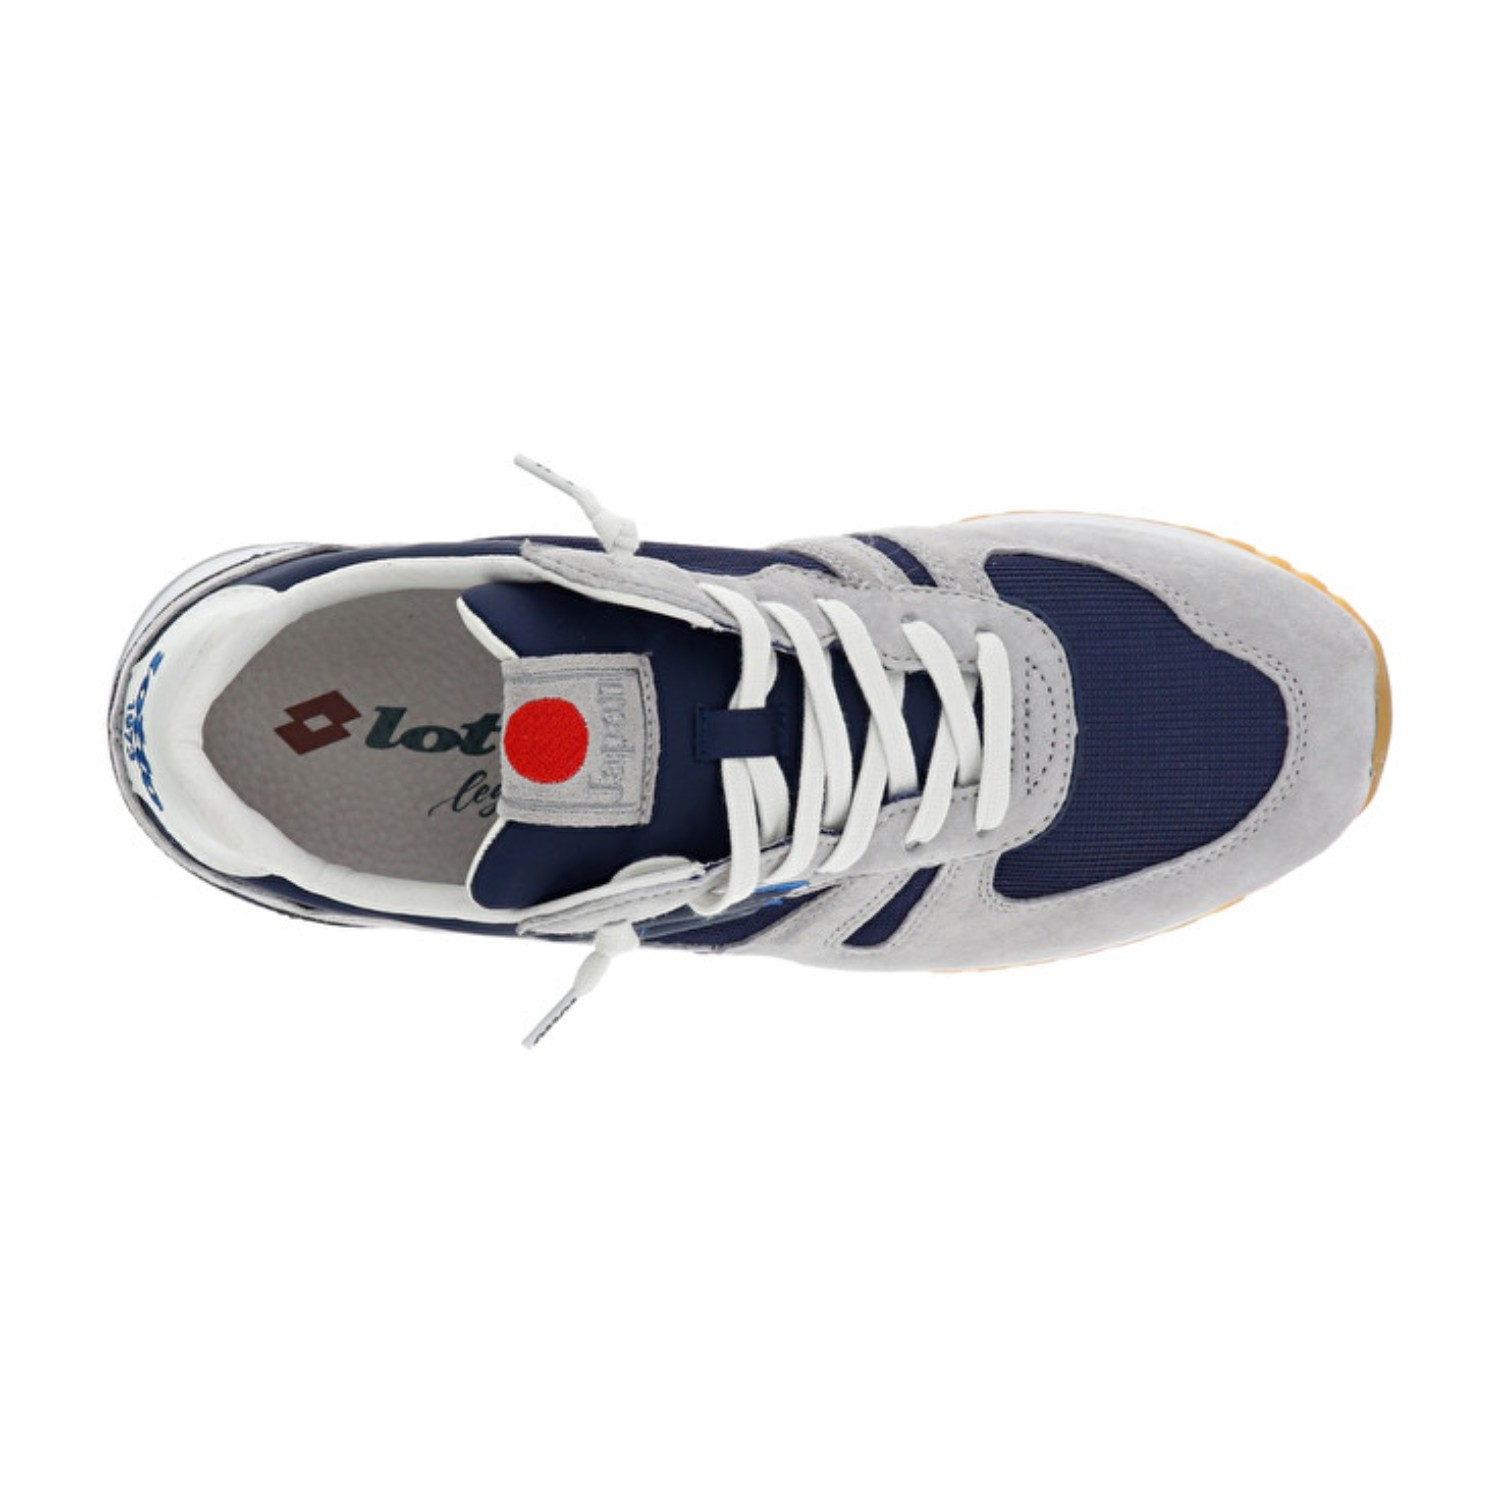 Italiano) LOTTO L58233 TOKIO SHIBUYA GREYBLUE SNEAKERS